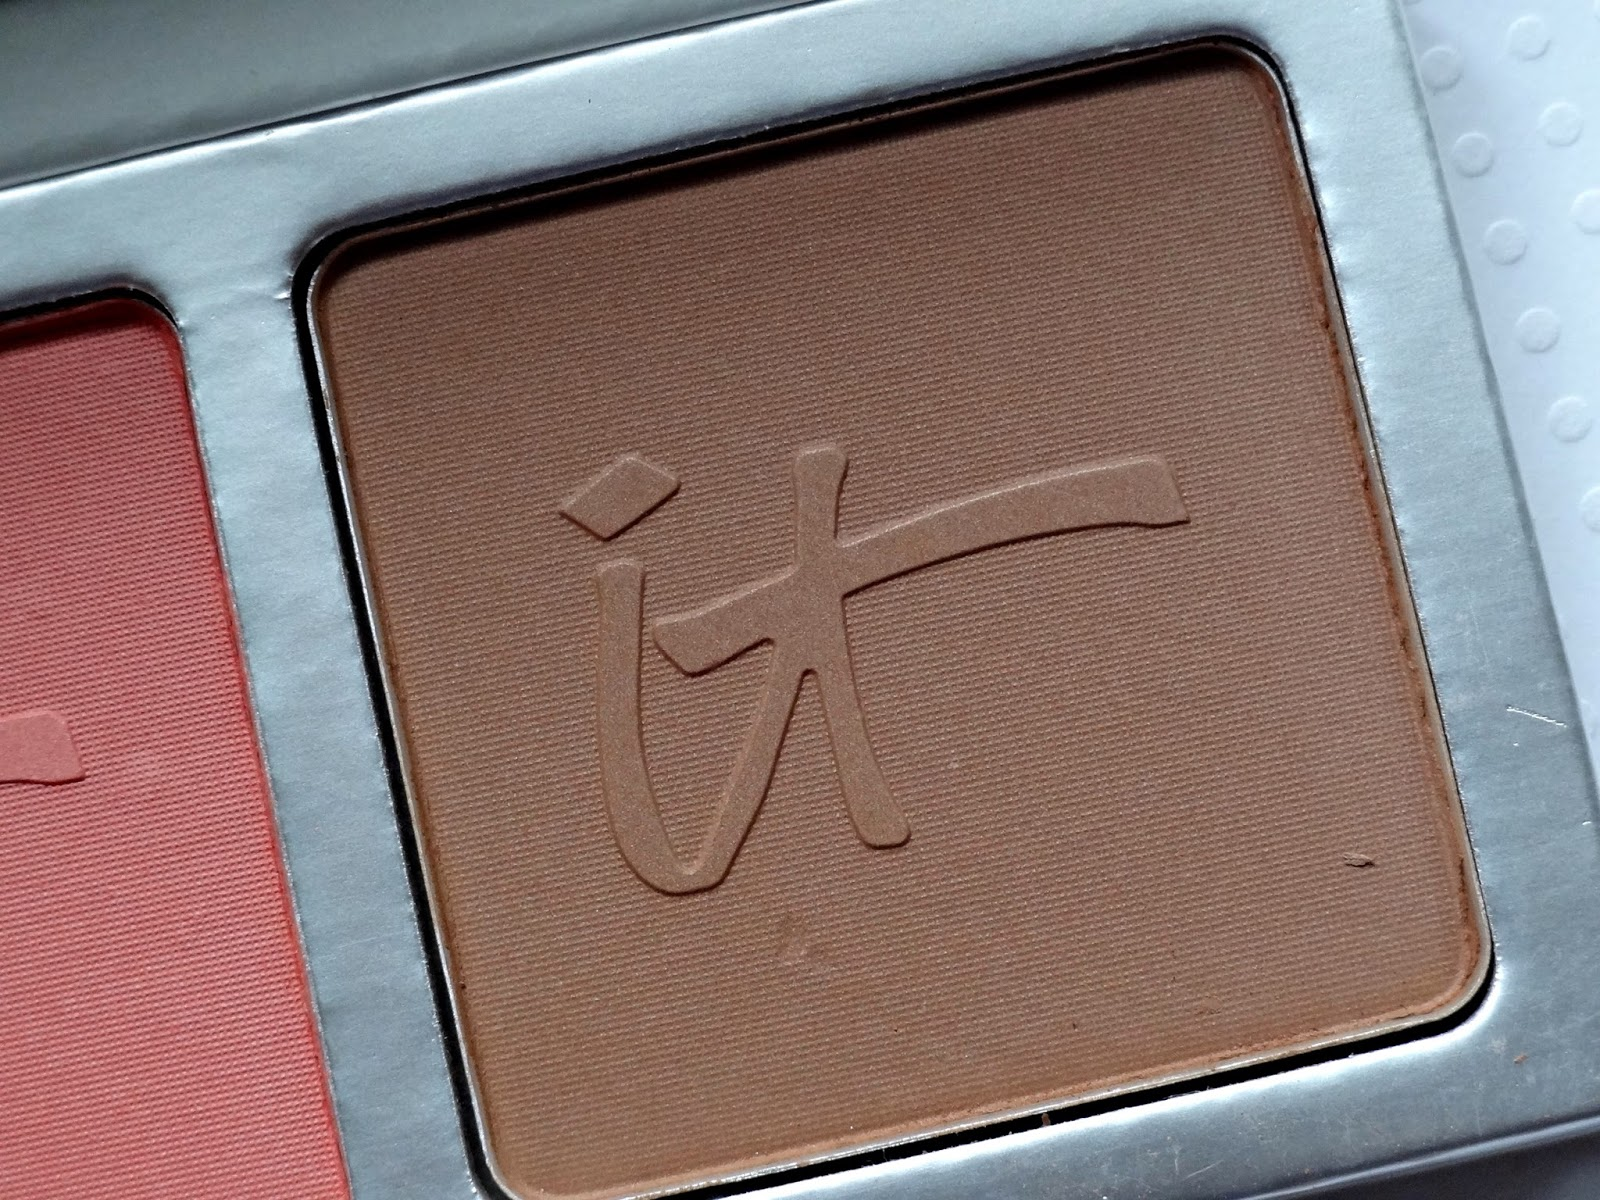 IT Cosmetics CC+ Radiance Palette and Heavenly Luxe Wand Ball Brush Review, Photos & Swatches